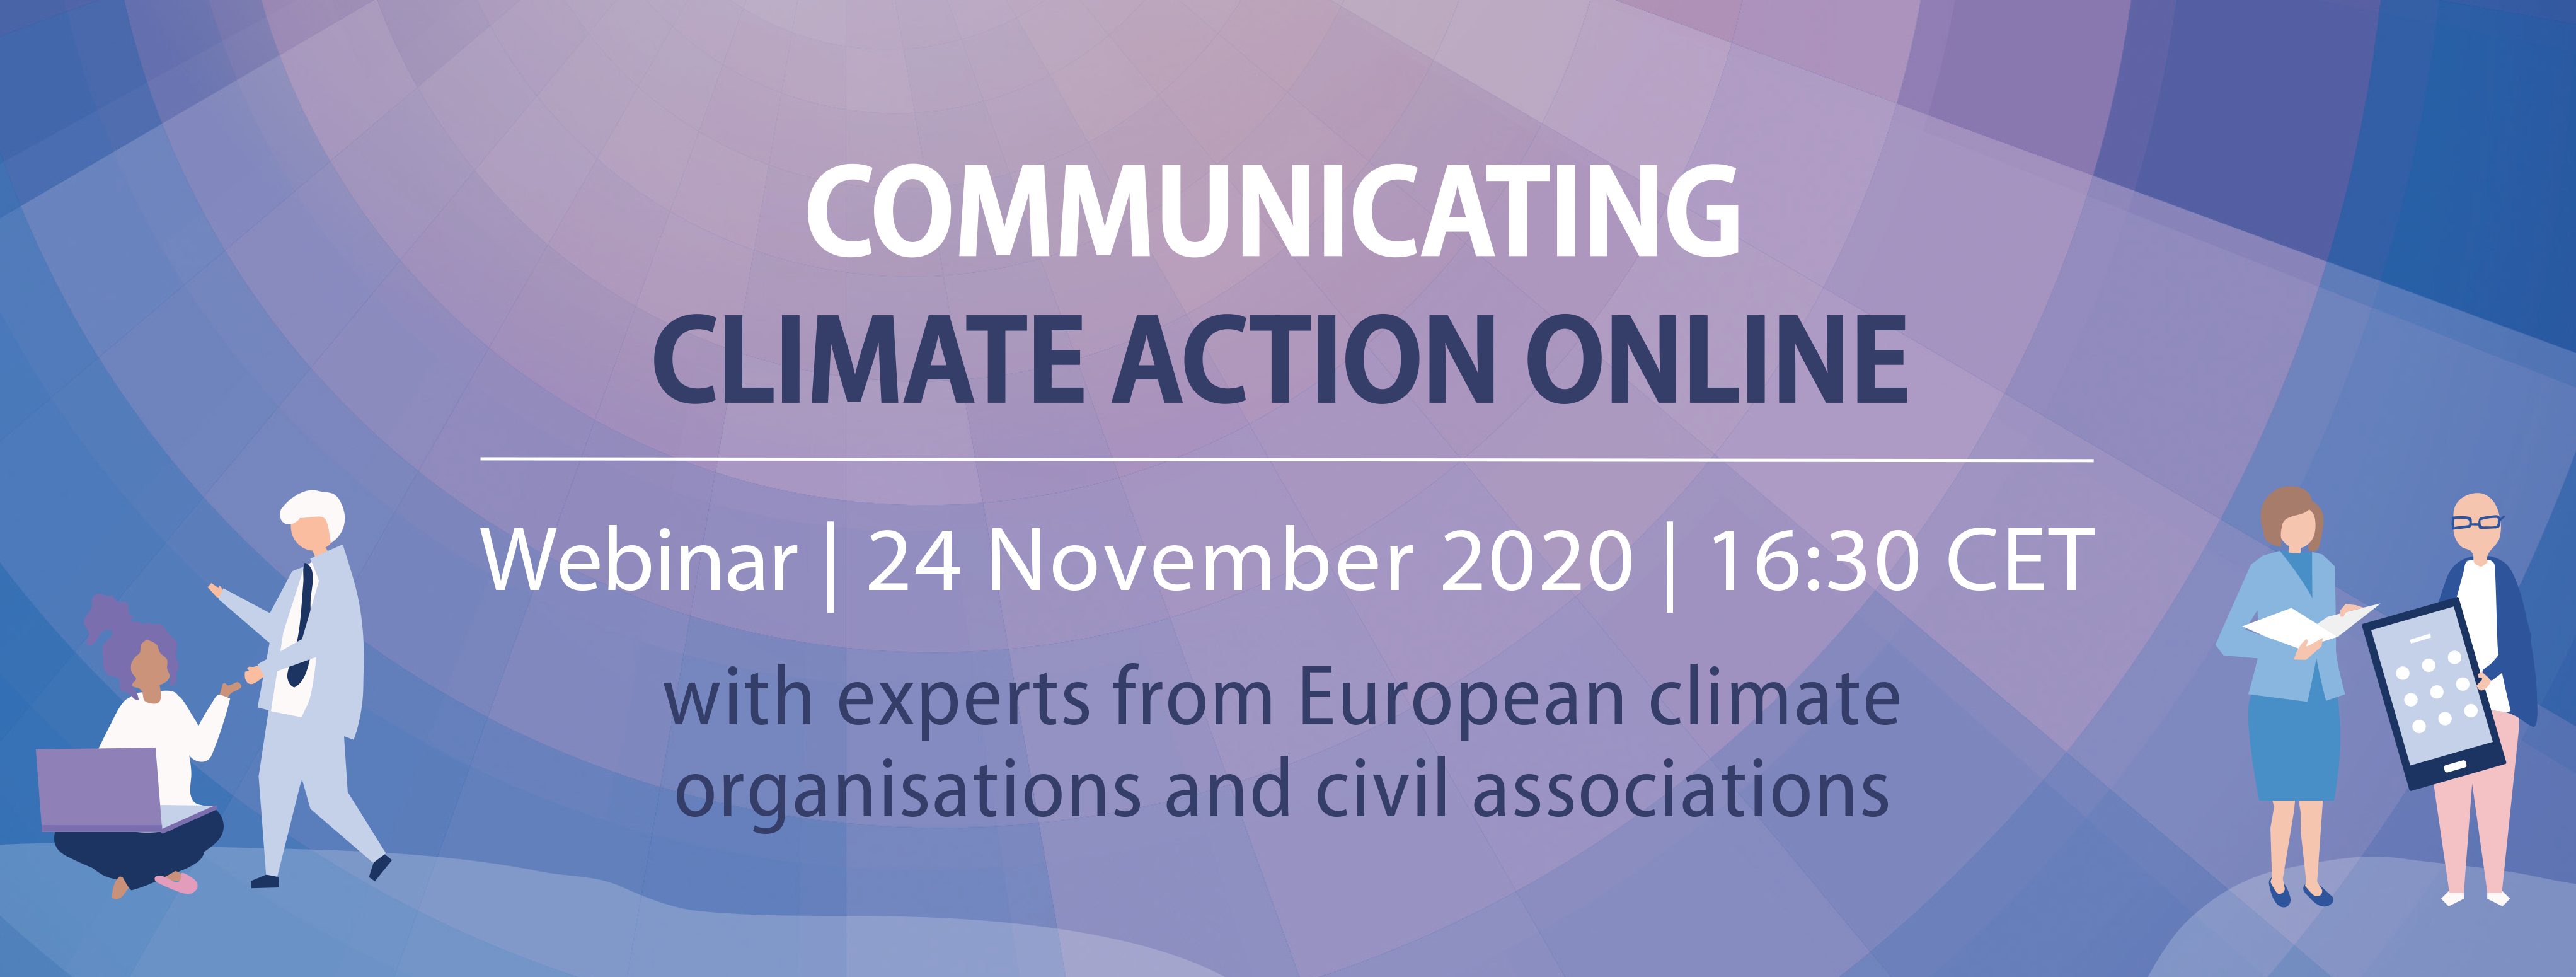 Sign-up to our next Digital Masterclass on 24 November: Communicating climate action online.